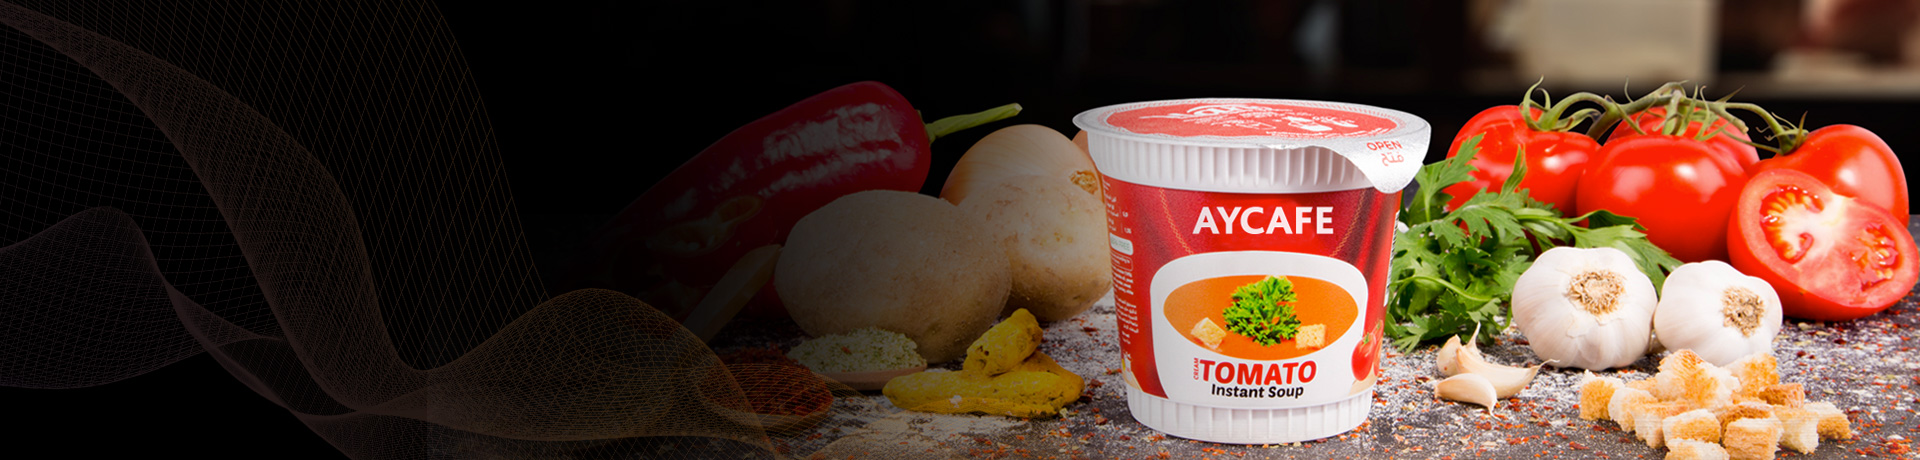 Aycafe Tomato Instant Soup In Cup